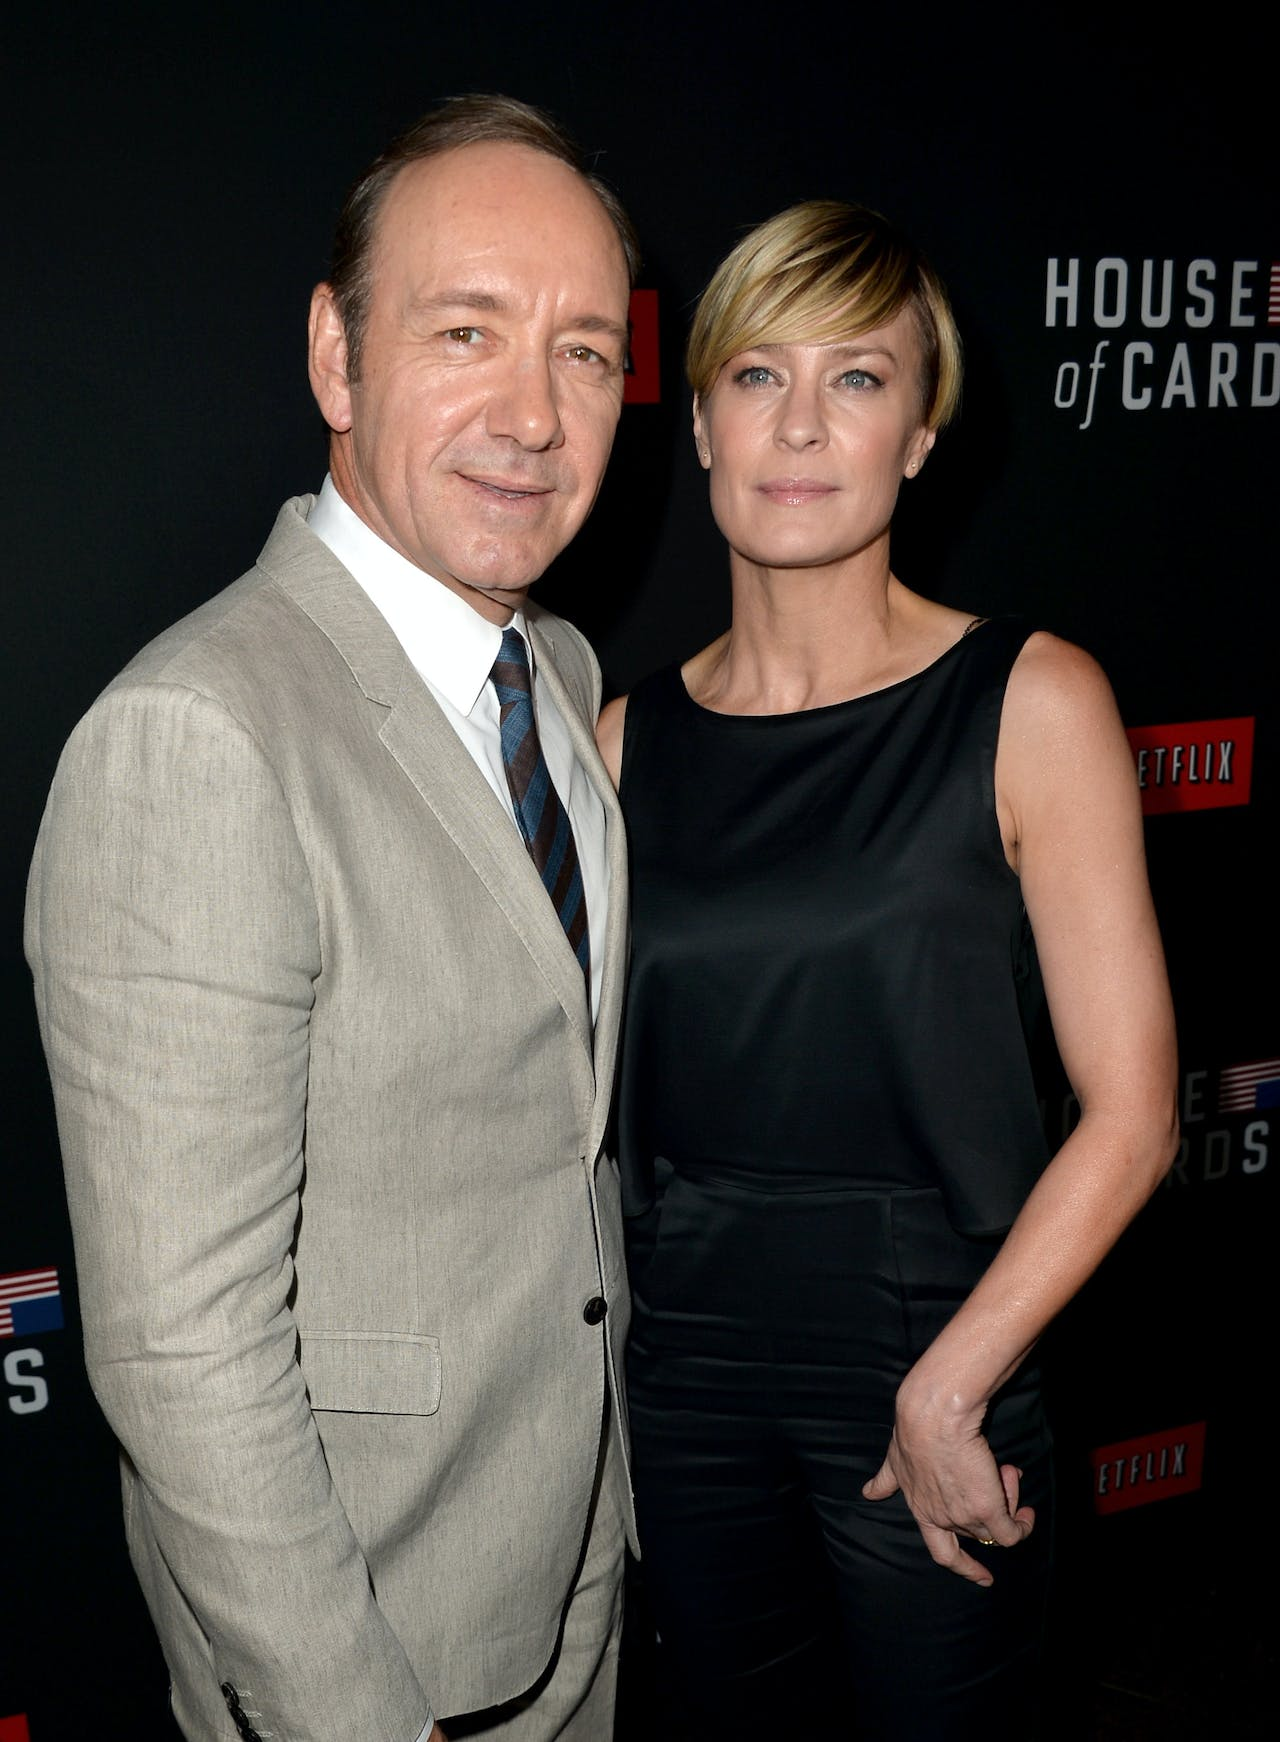 Acteurs Kevin Spacey en Robin Wright, die spelen in de meest bekende serie House of Cards